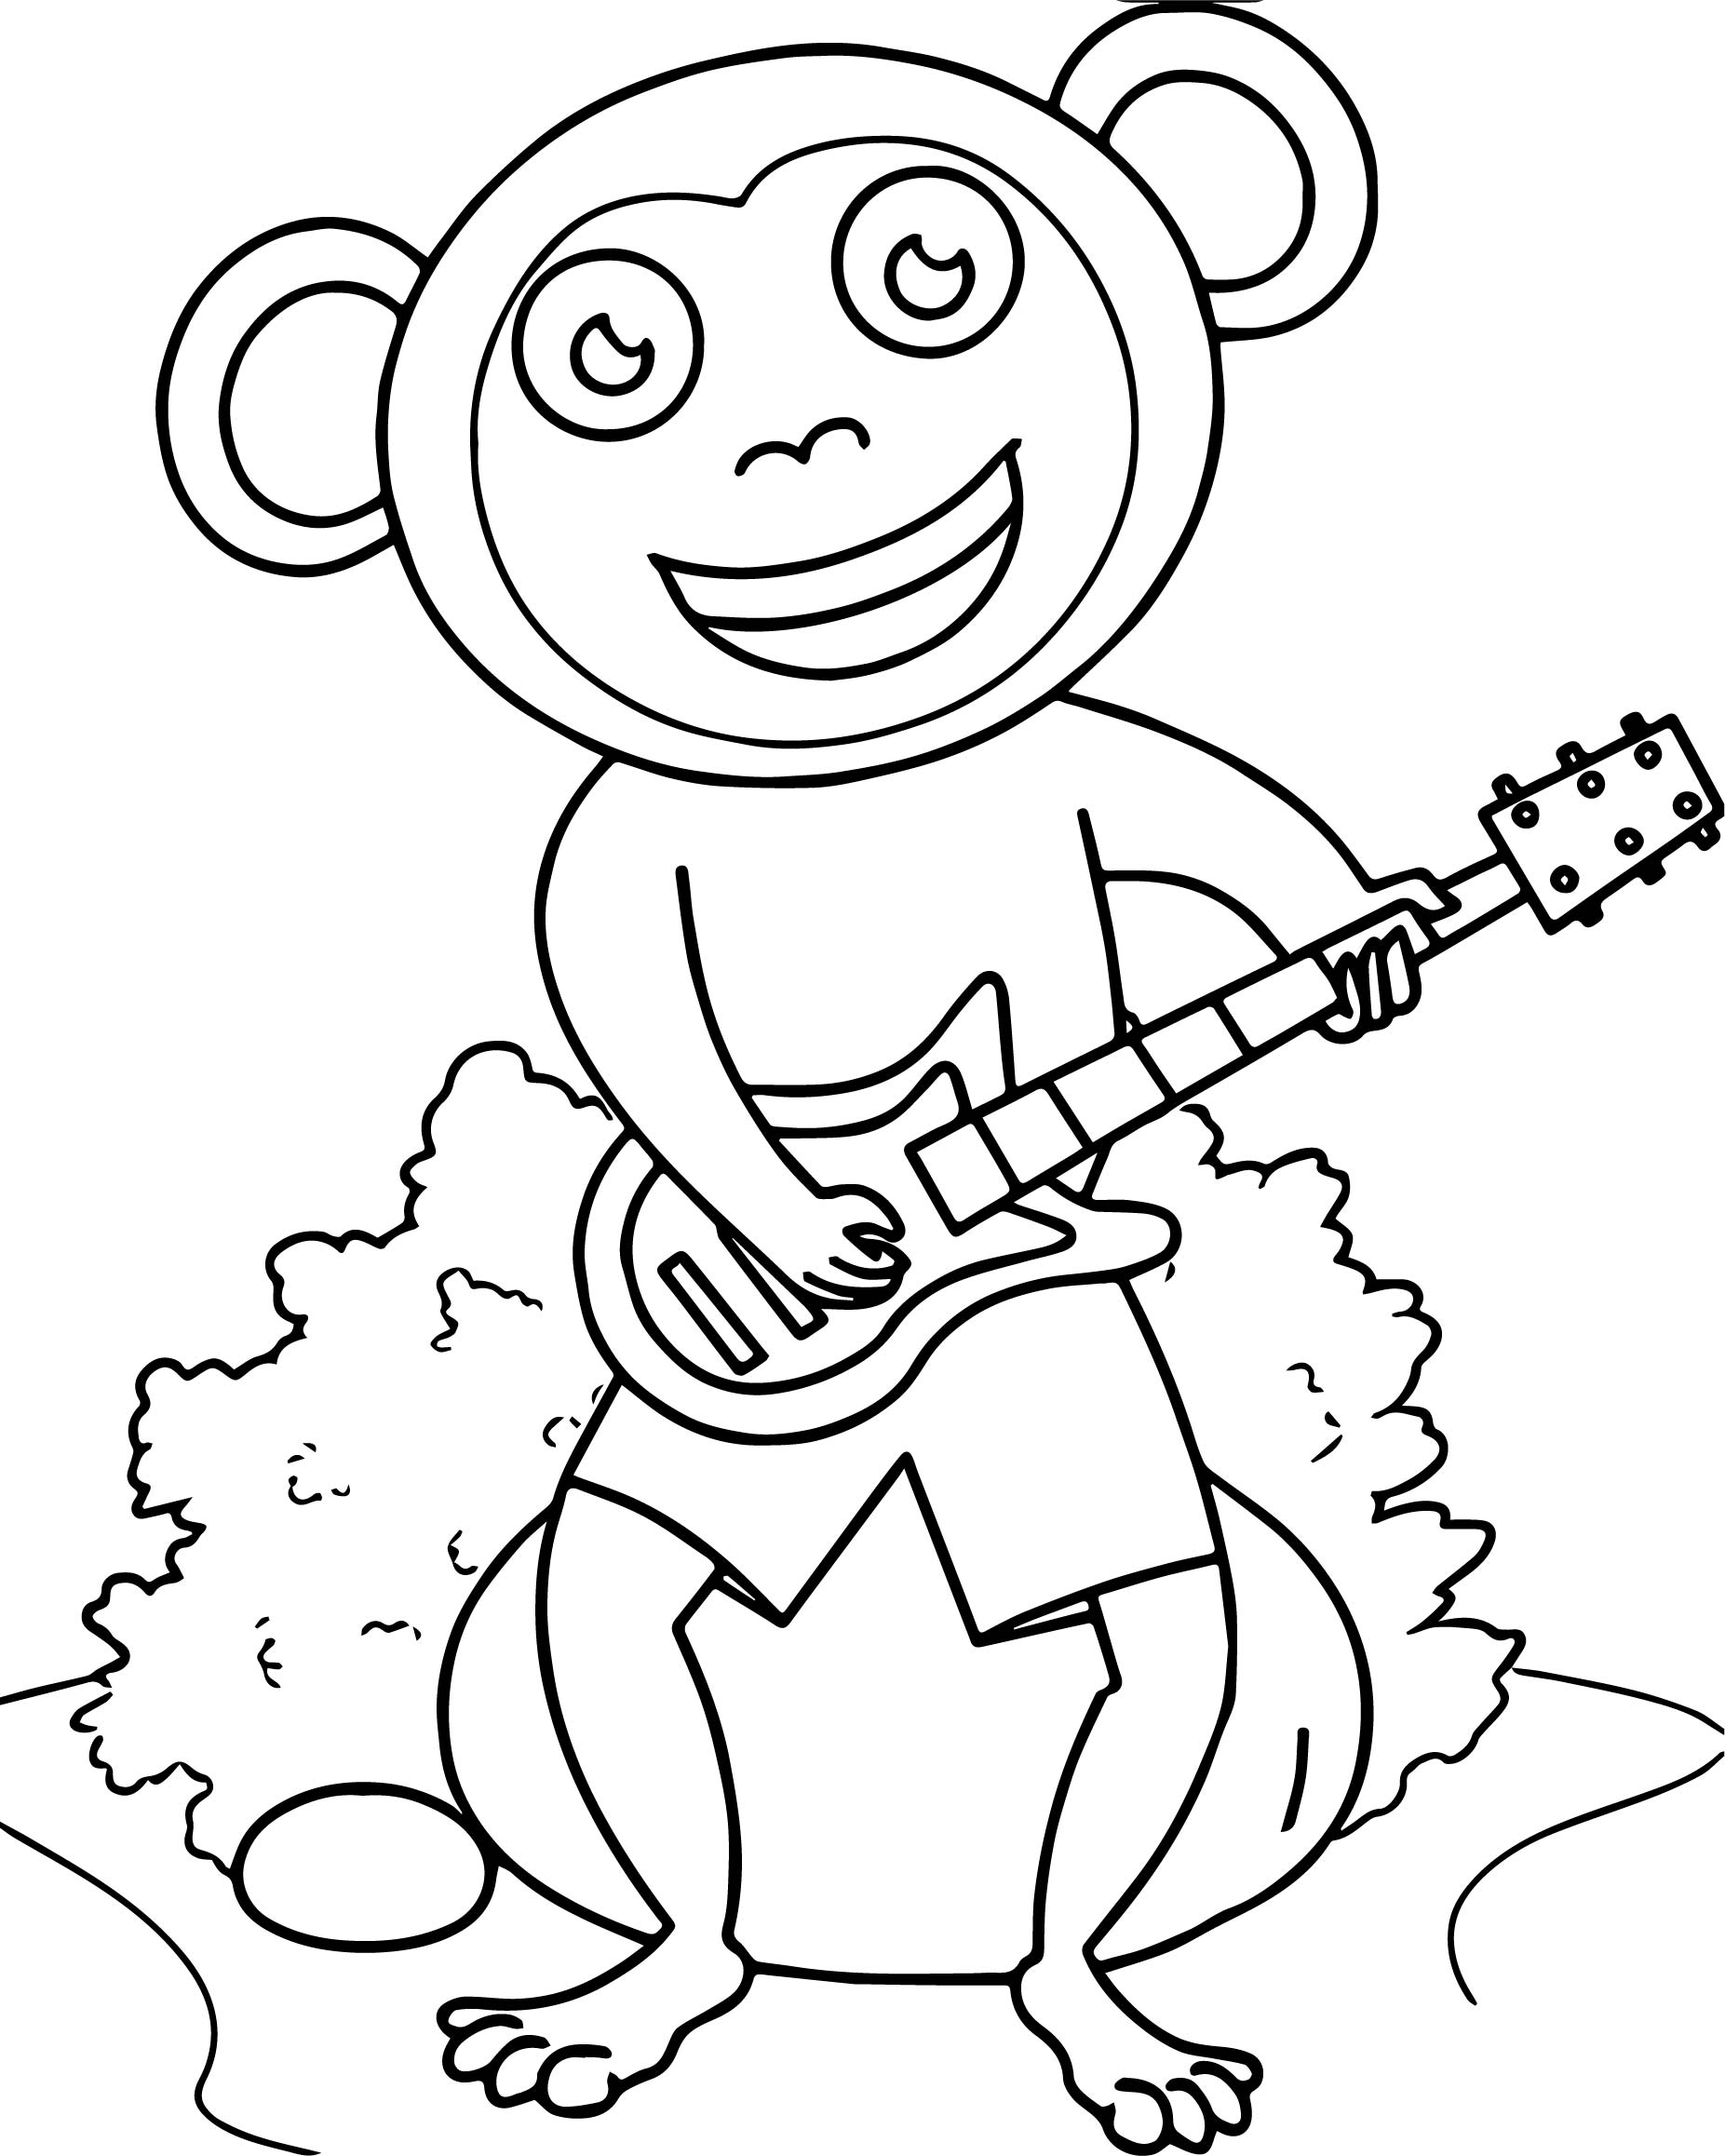 Modern Rock Coloring Pages Inspiration - Resume Ideas - namanasa.com